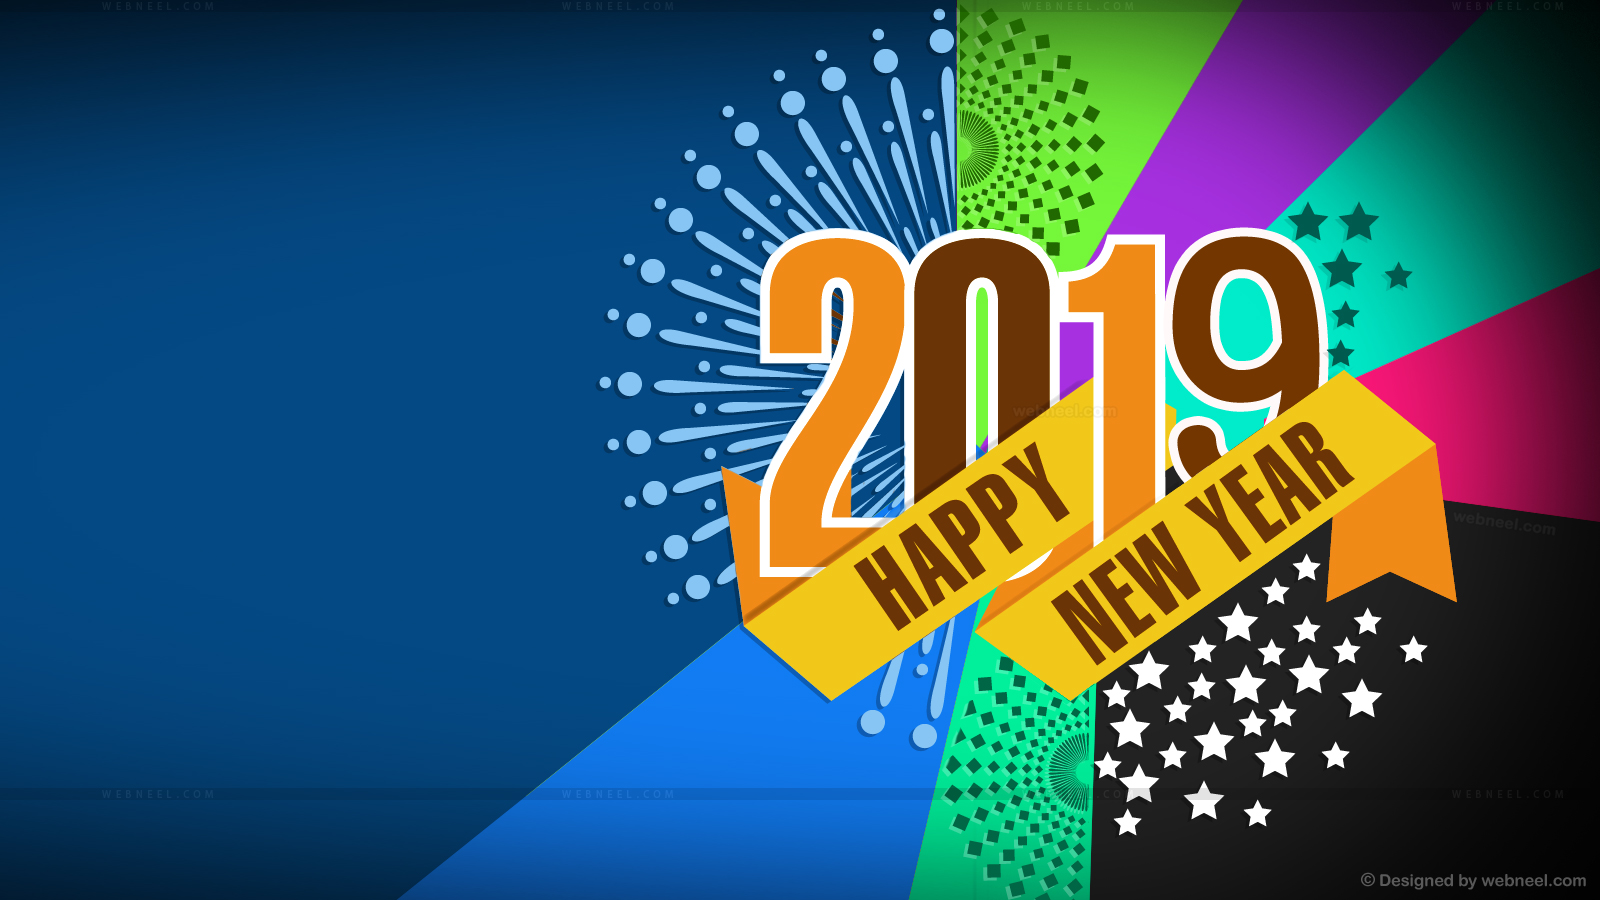 50 Beautiful Happy New Year Wallpapers for your desktop - part 2